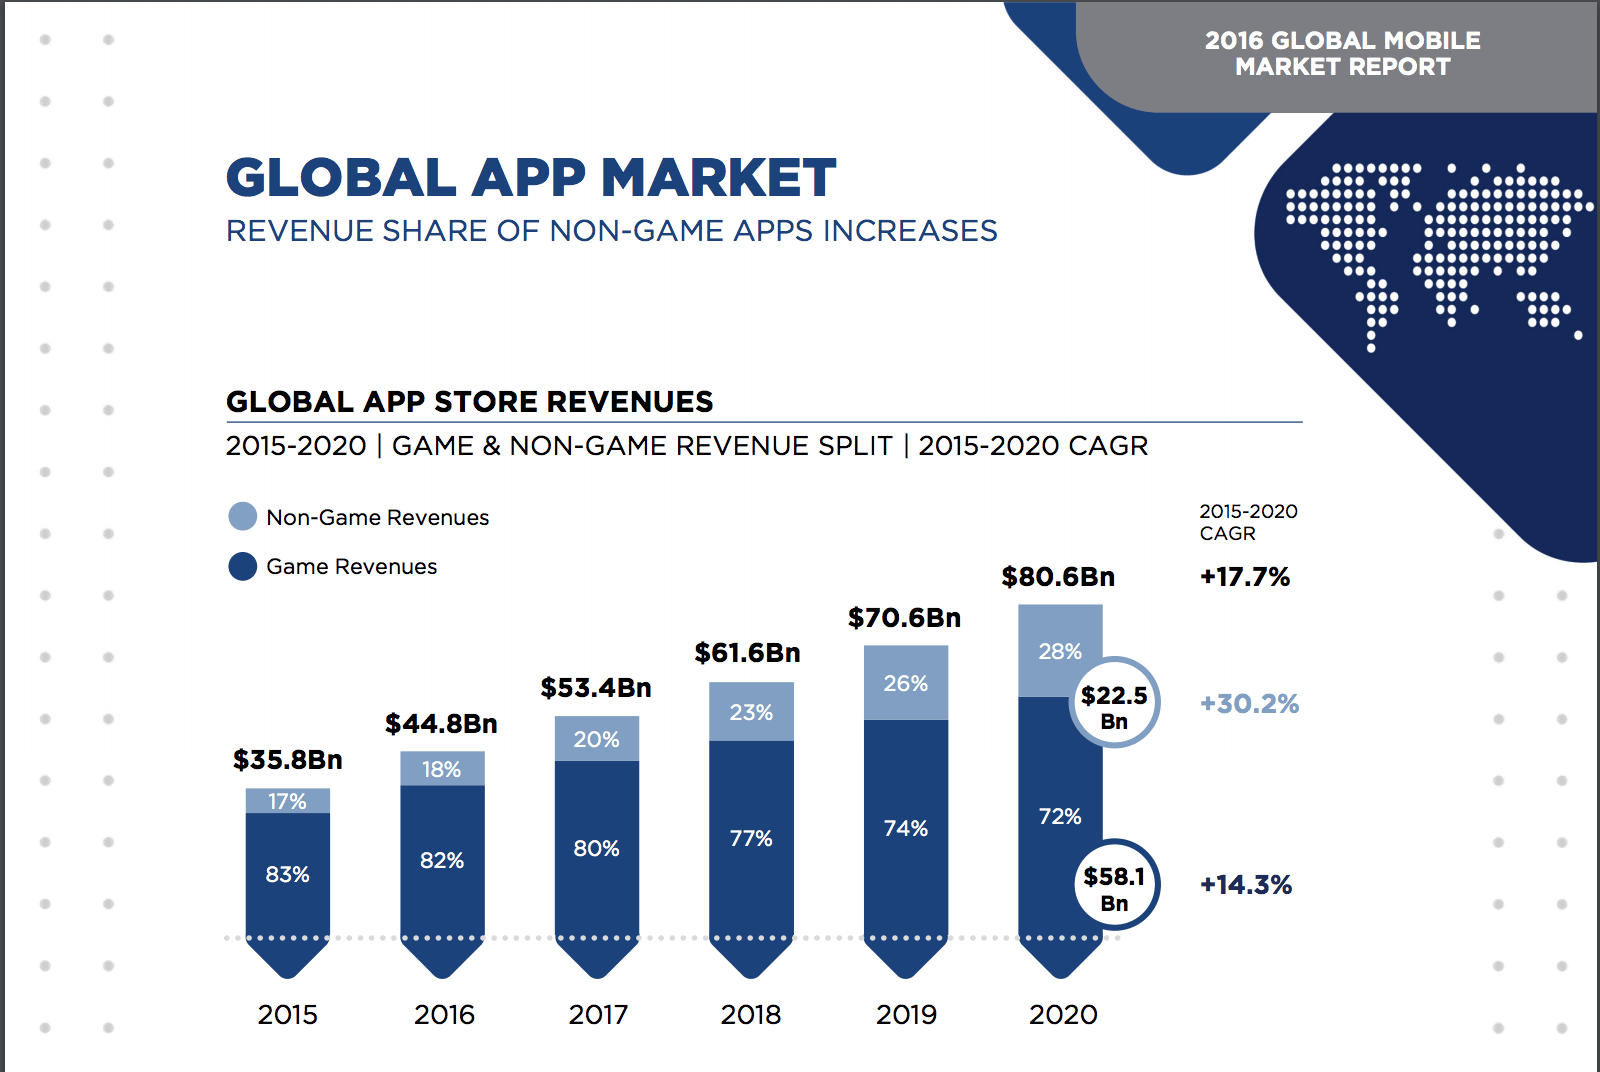 newzoo-mobile-market-report-2016